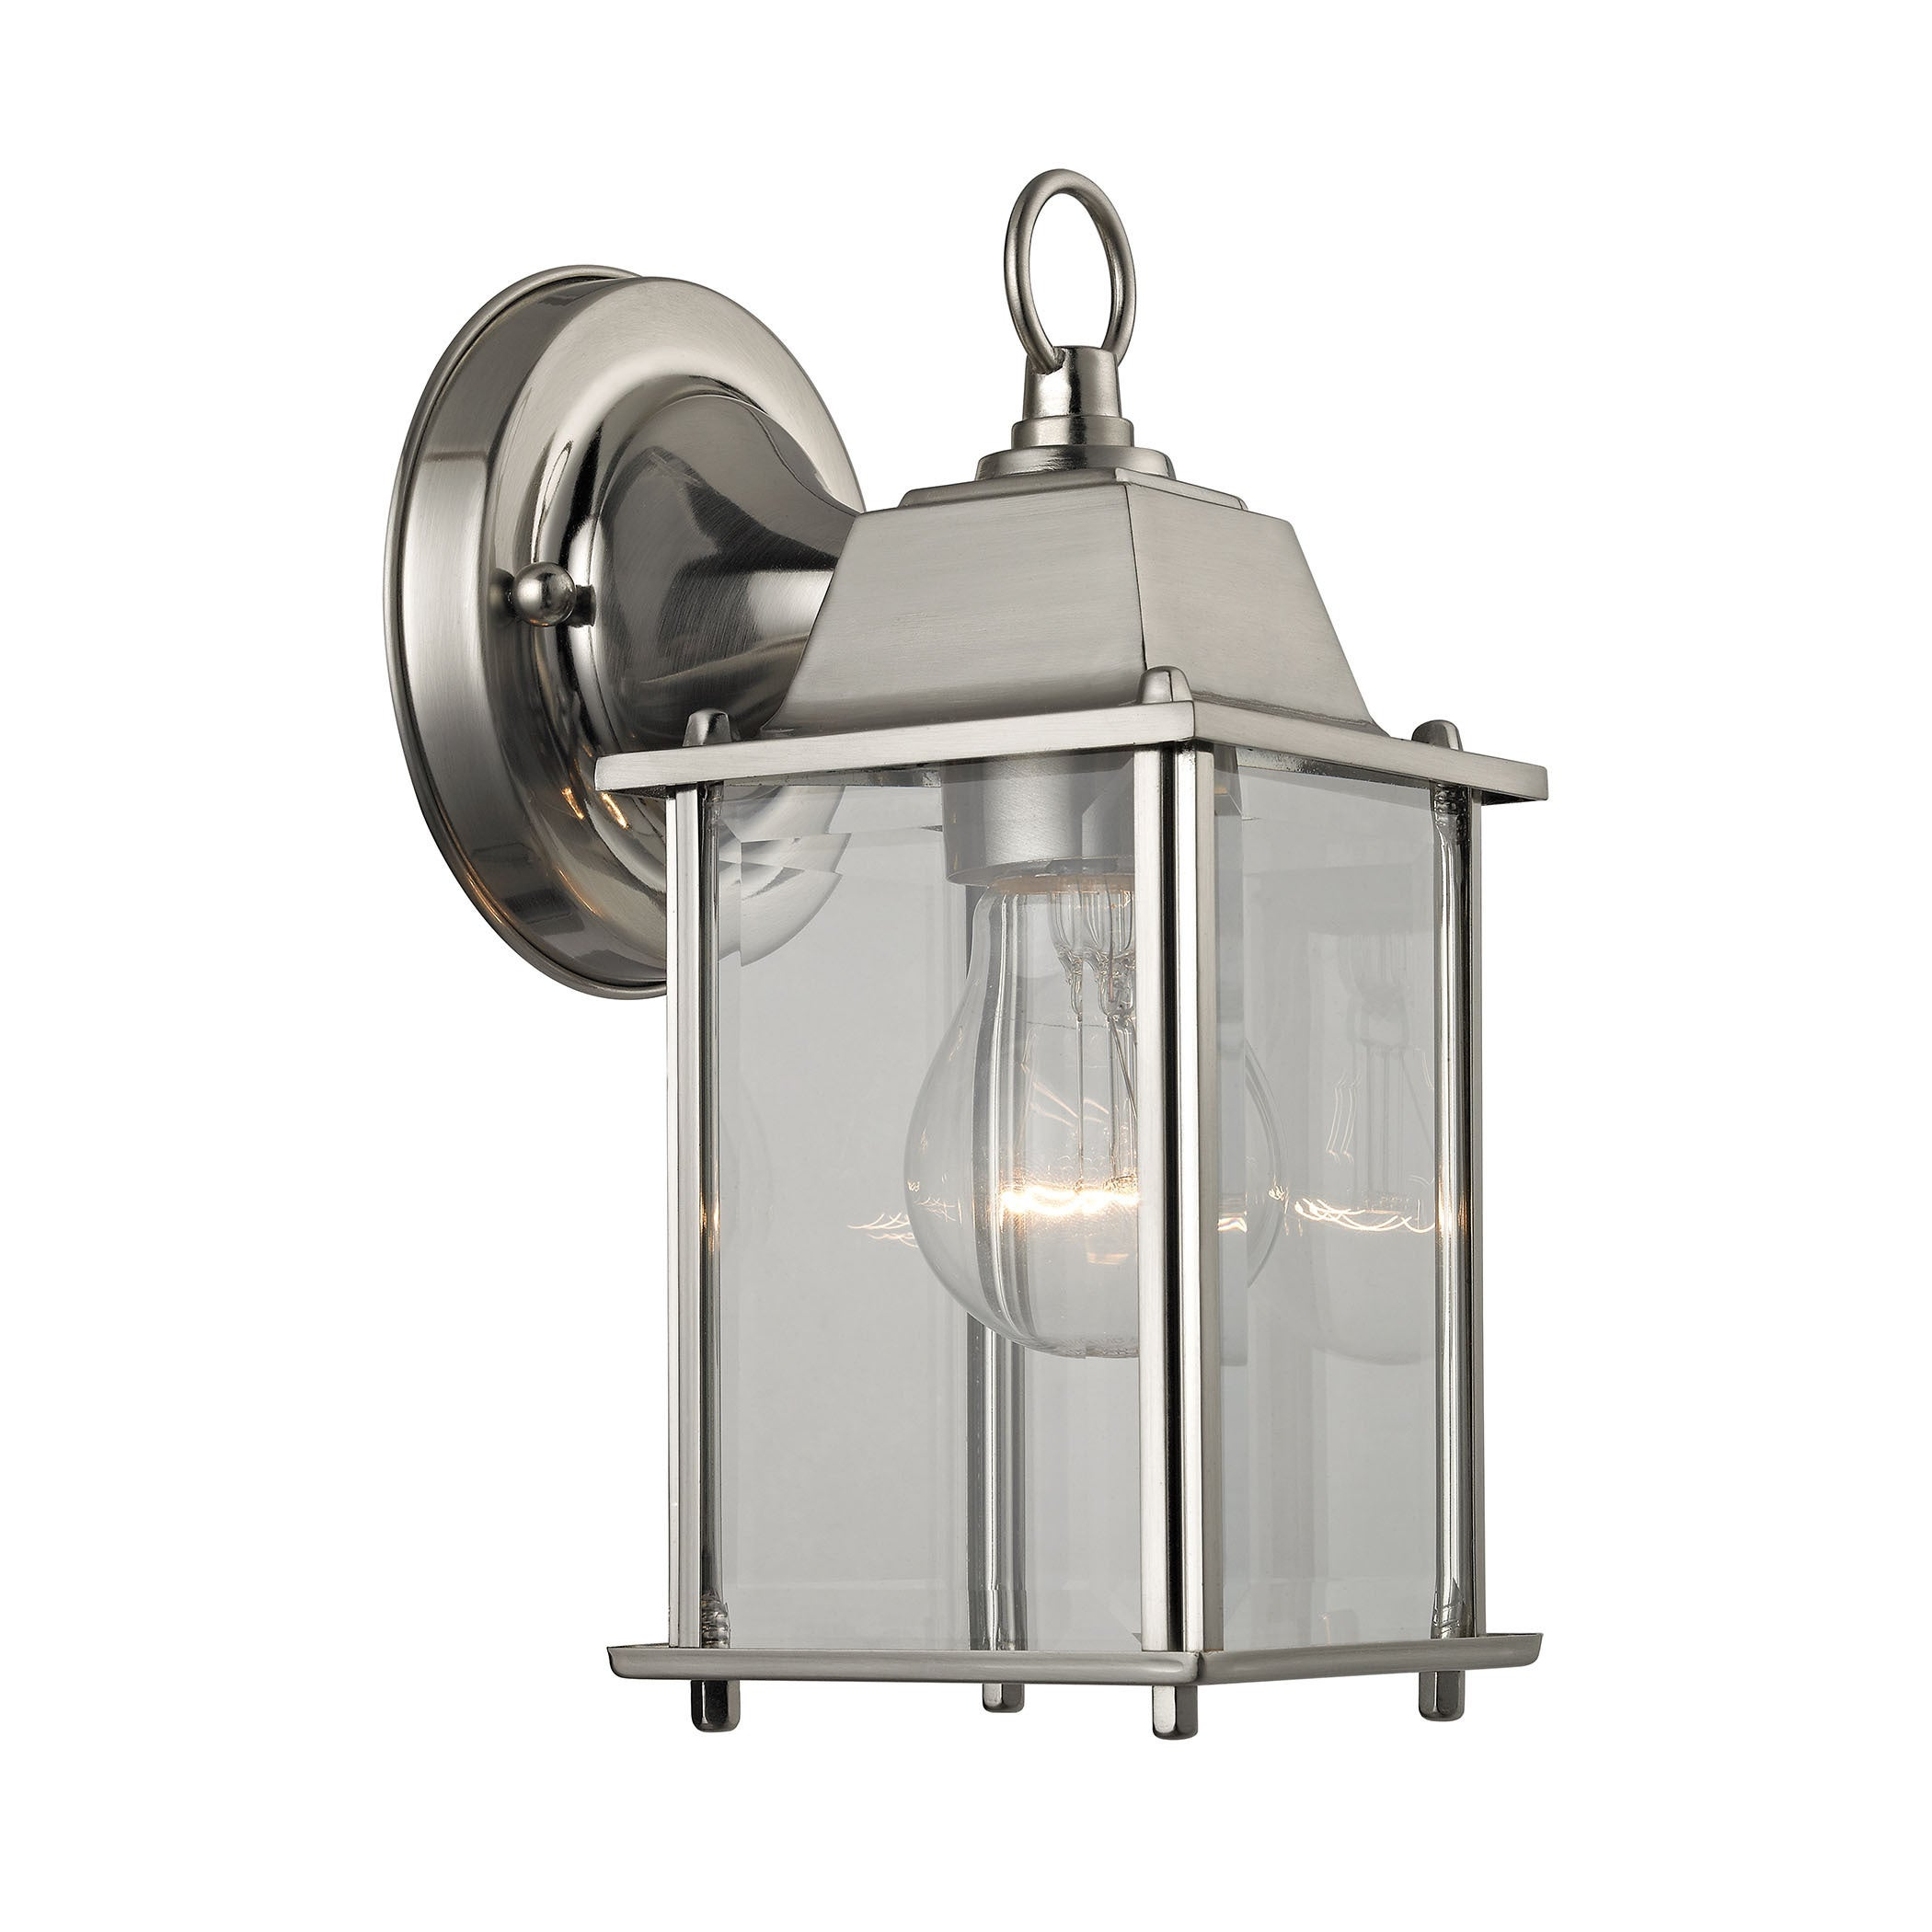 Charmant Cornerstone 5.75 Inch Brushed Nickel 1 Light Outdoor Wall Sconce